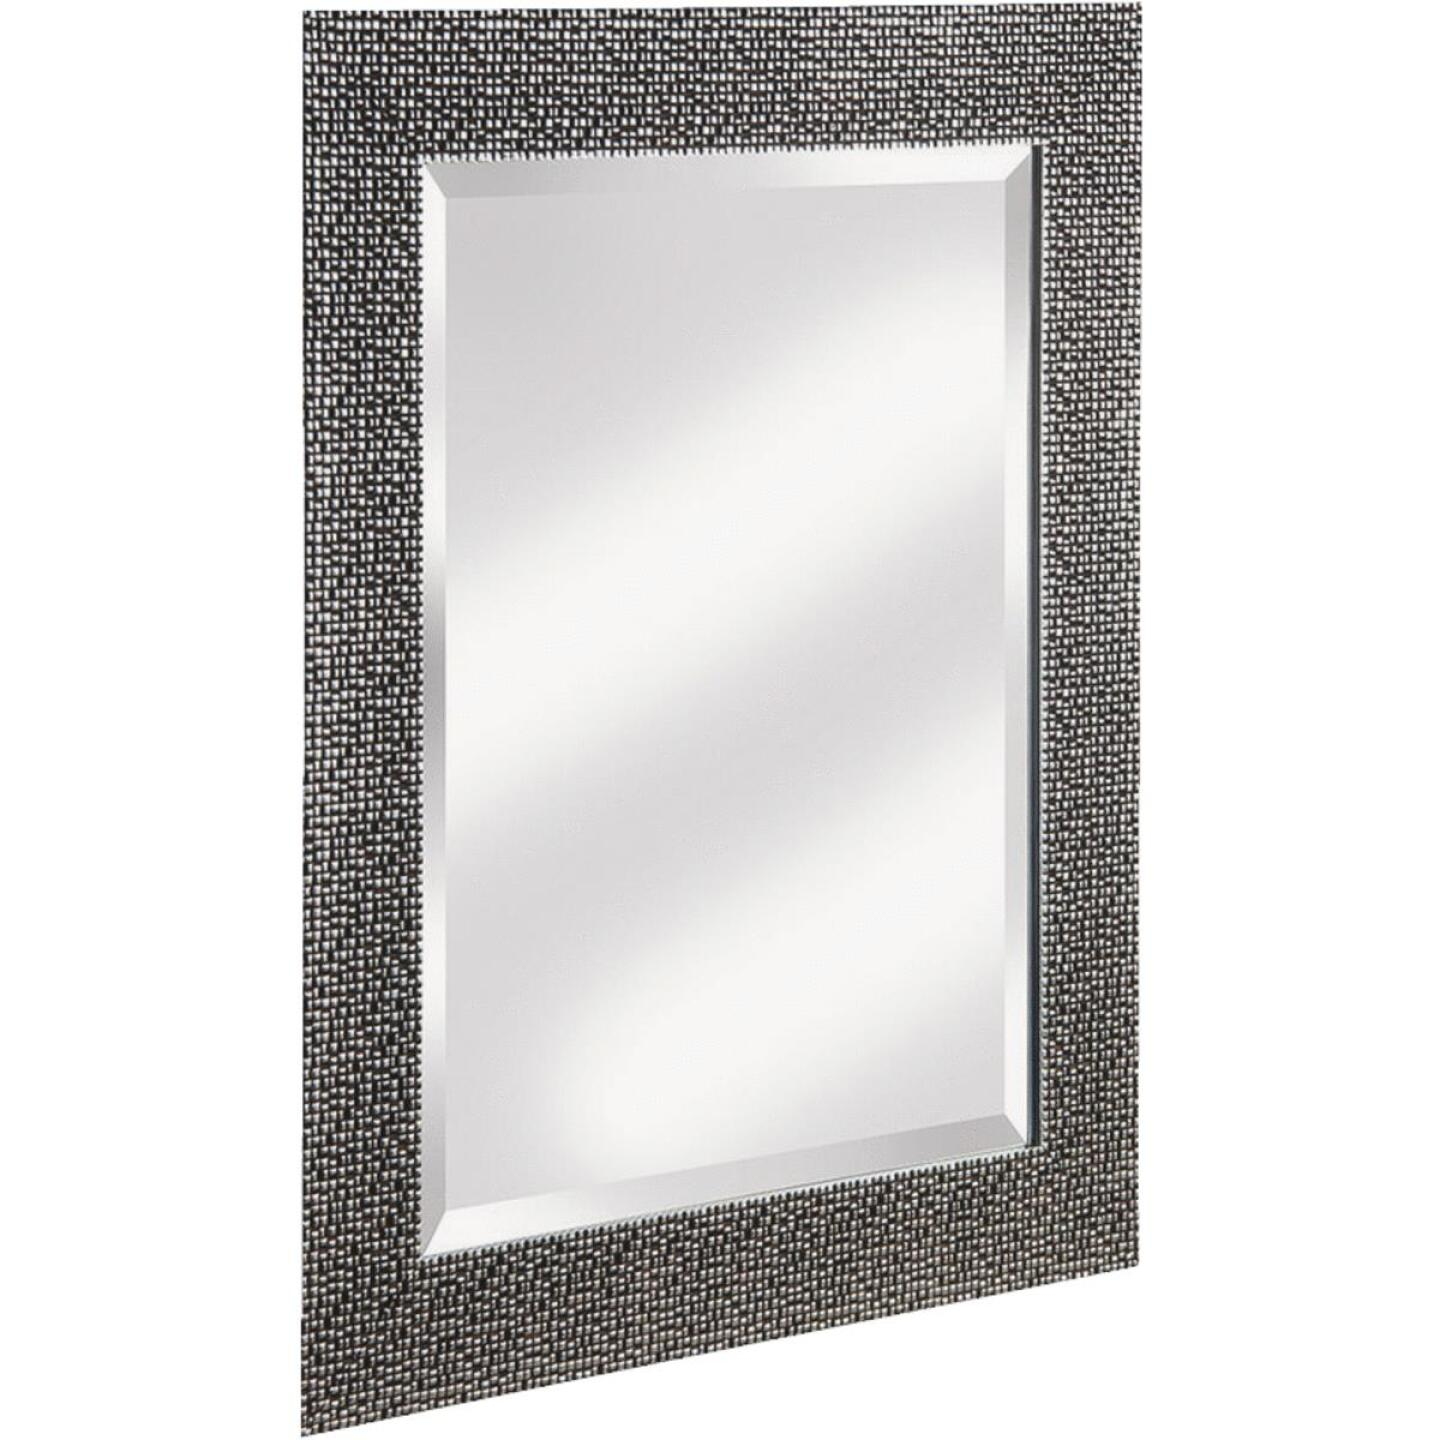 Erias Home Designs 25.5 In. W. x 35.5 In. H. Chromed Espresso Framed Wall Mirror Image 1